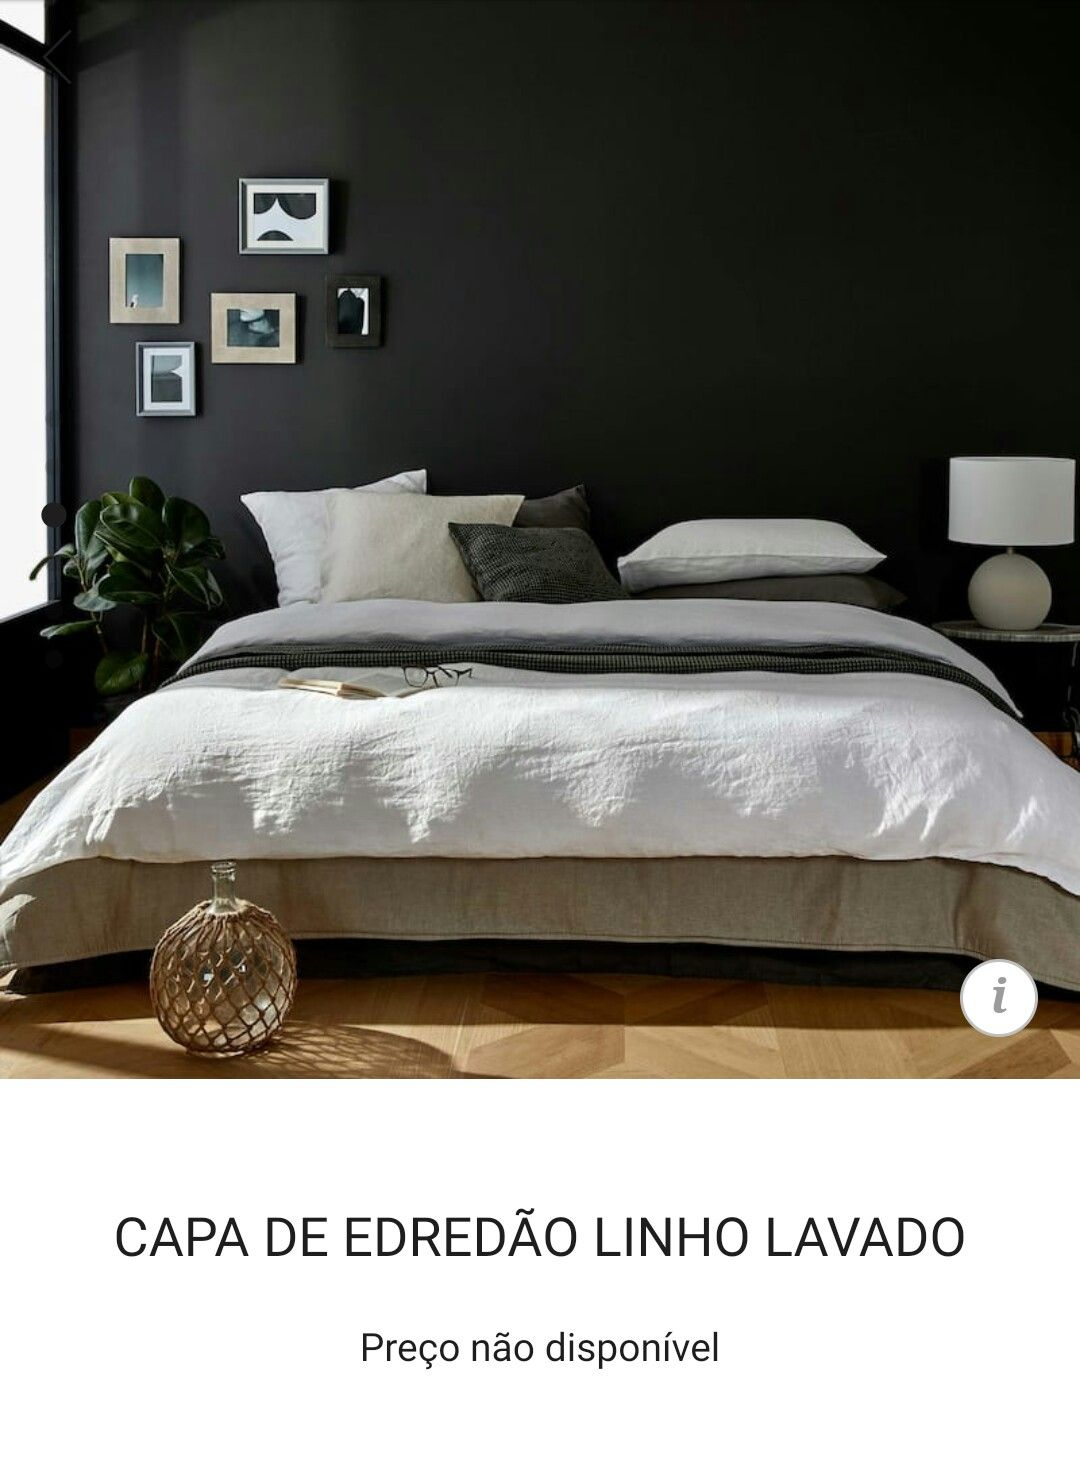 Pin By Bx3foto On Interior Design Washed Linen Duvet Cover Zara Home Bedroom Linen Duvet Covers